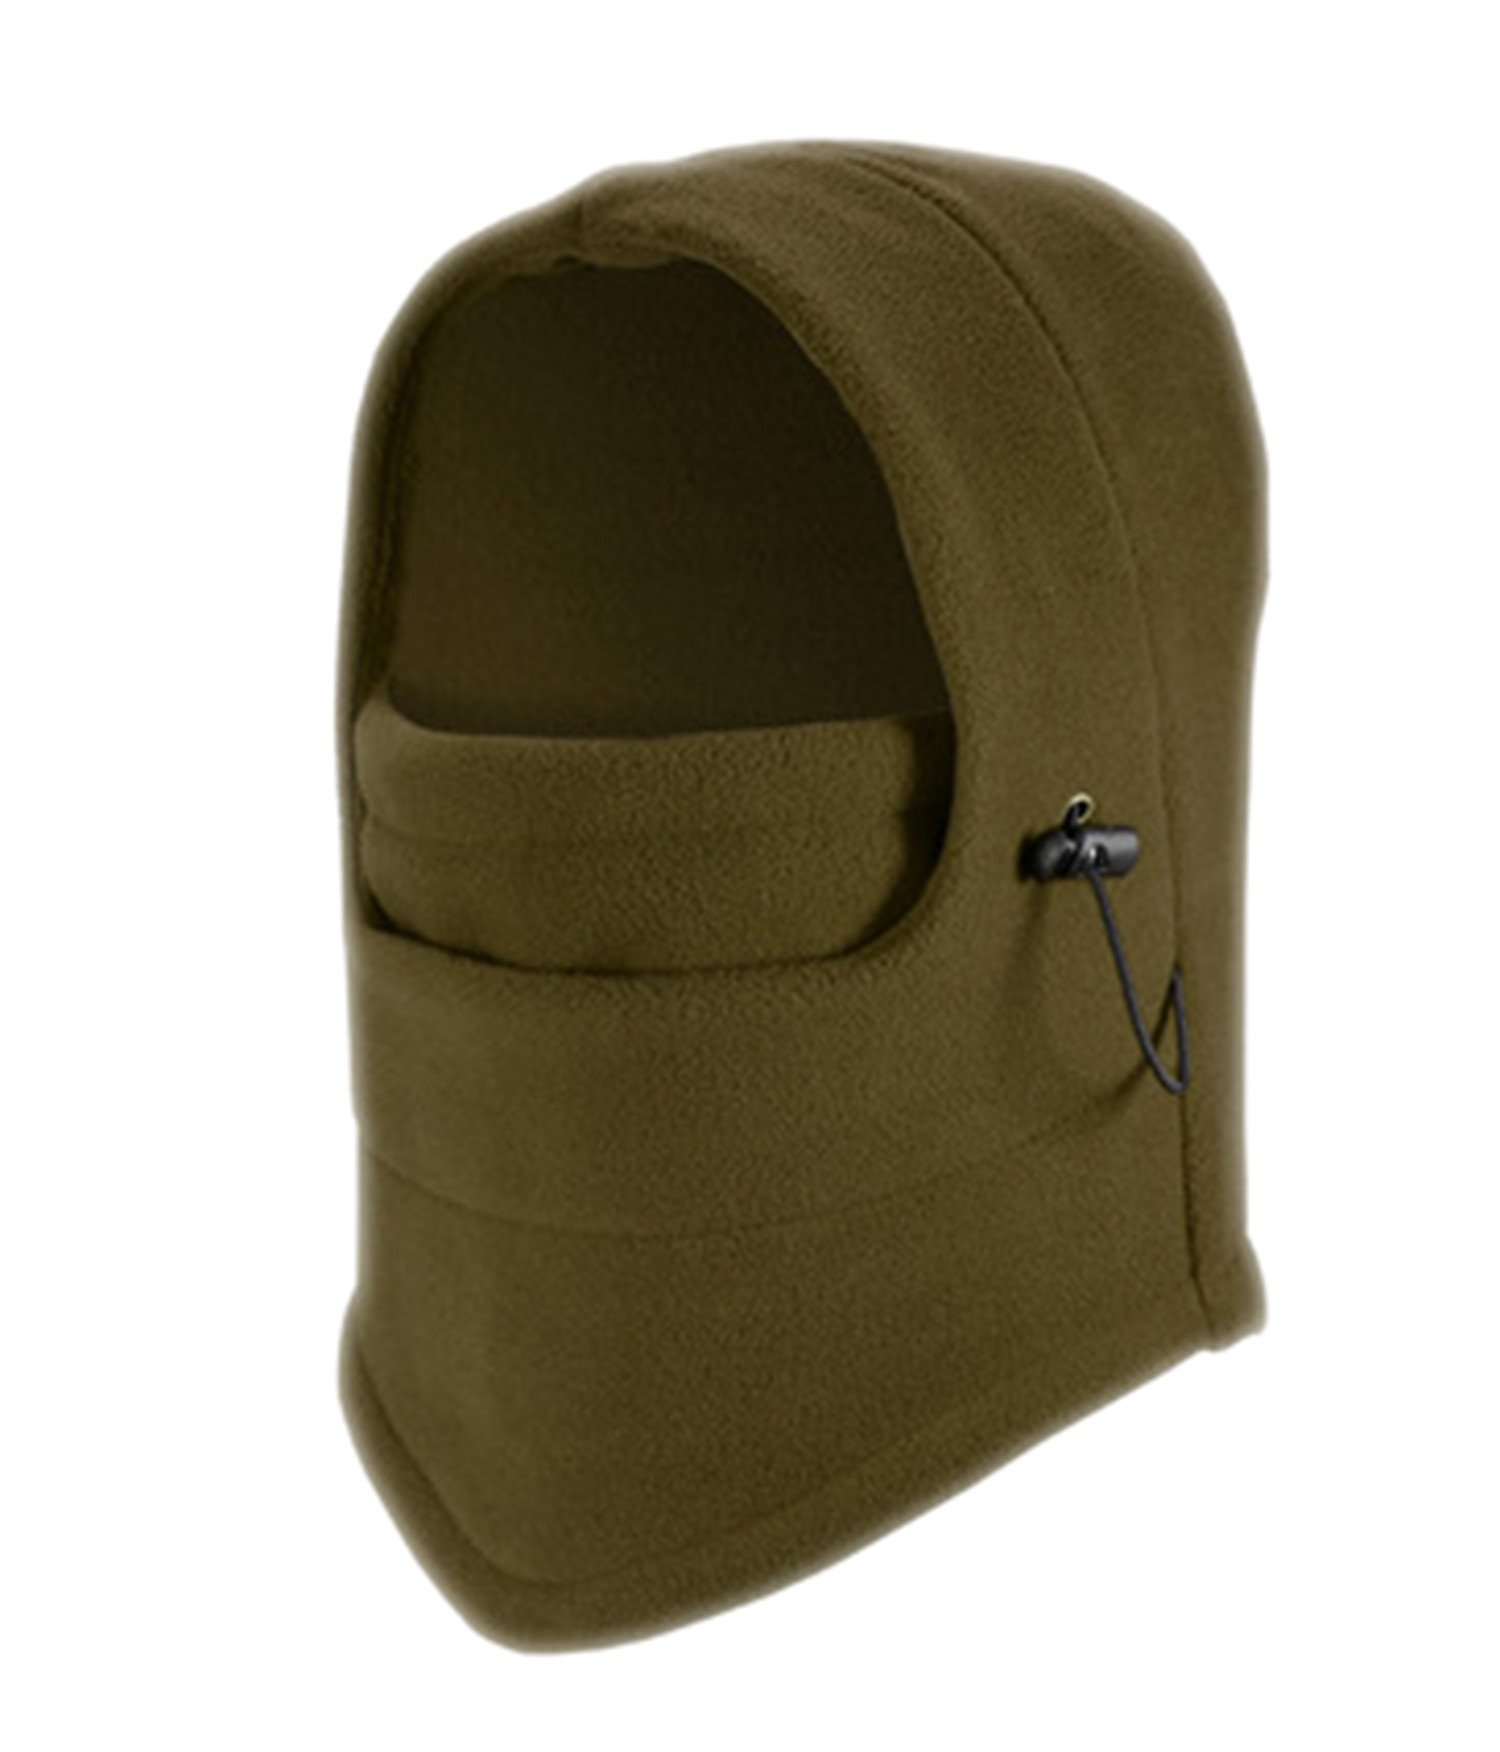 DD.UP Winter Warm Cover Anti-dust Windproof Cap Adjustable Ski Mask Hat (Army Green)